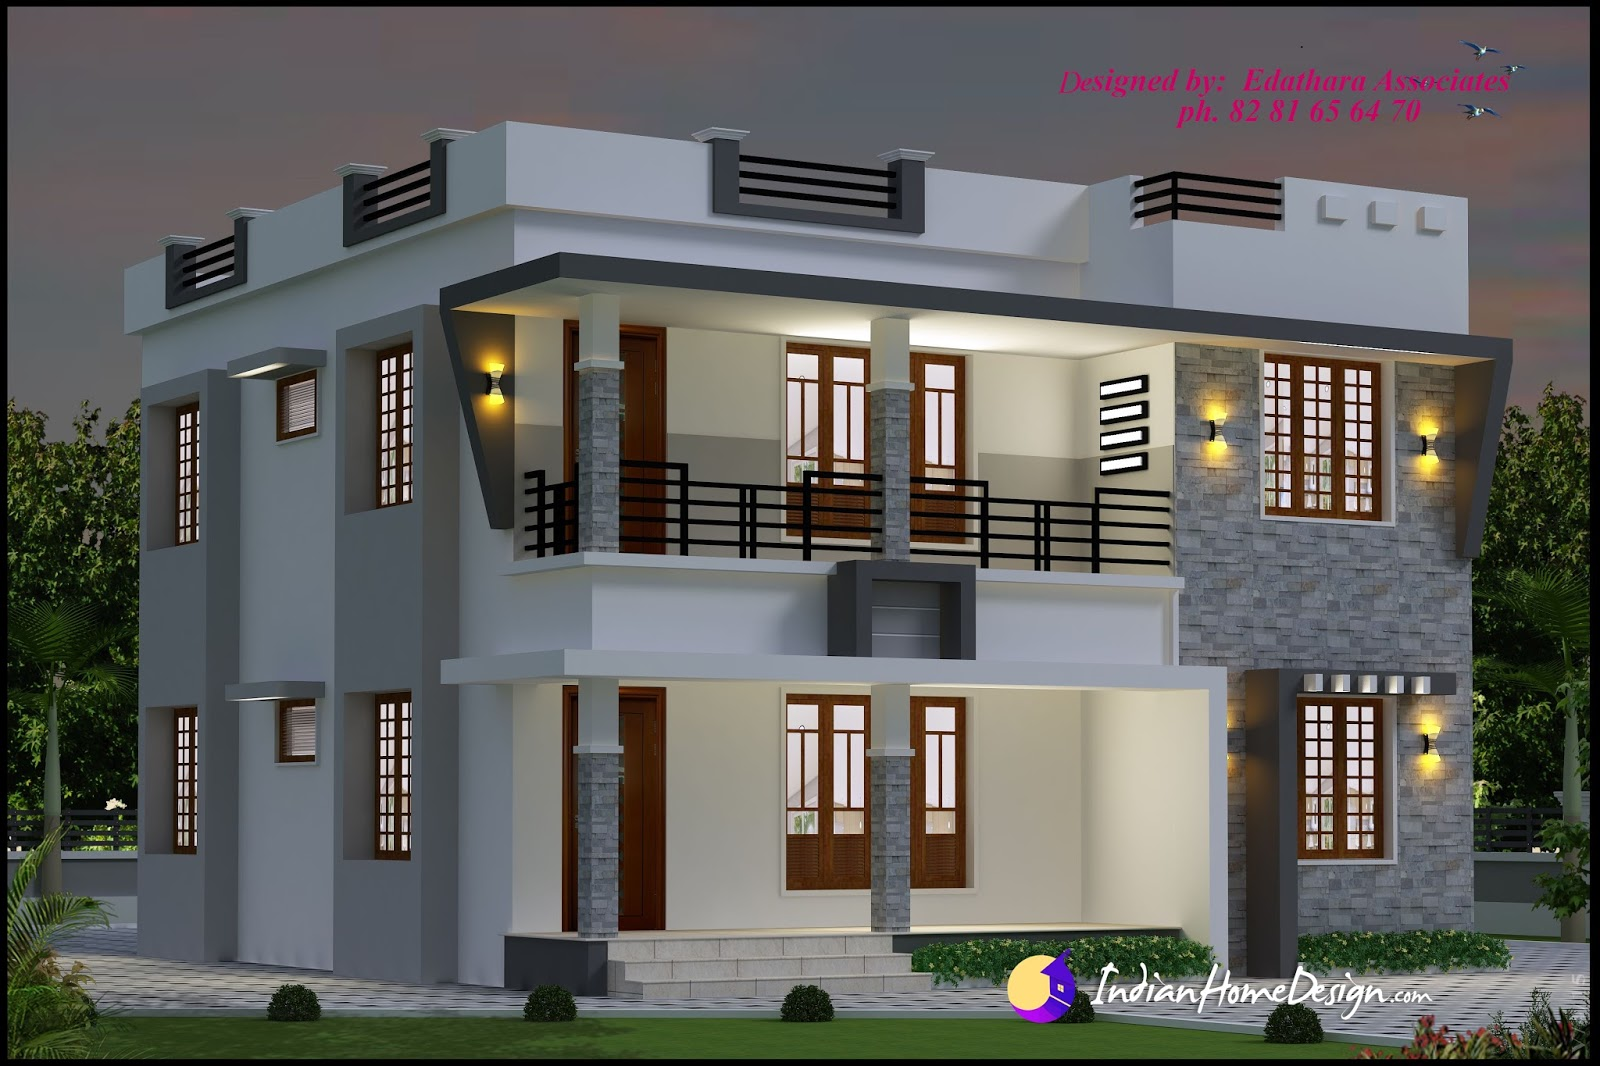 1696 sqft modern double floor kerala home design indian for Home designs double floor